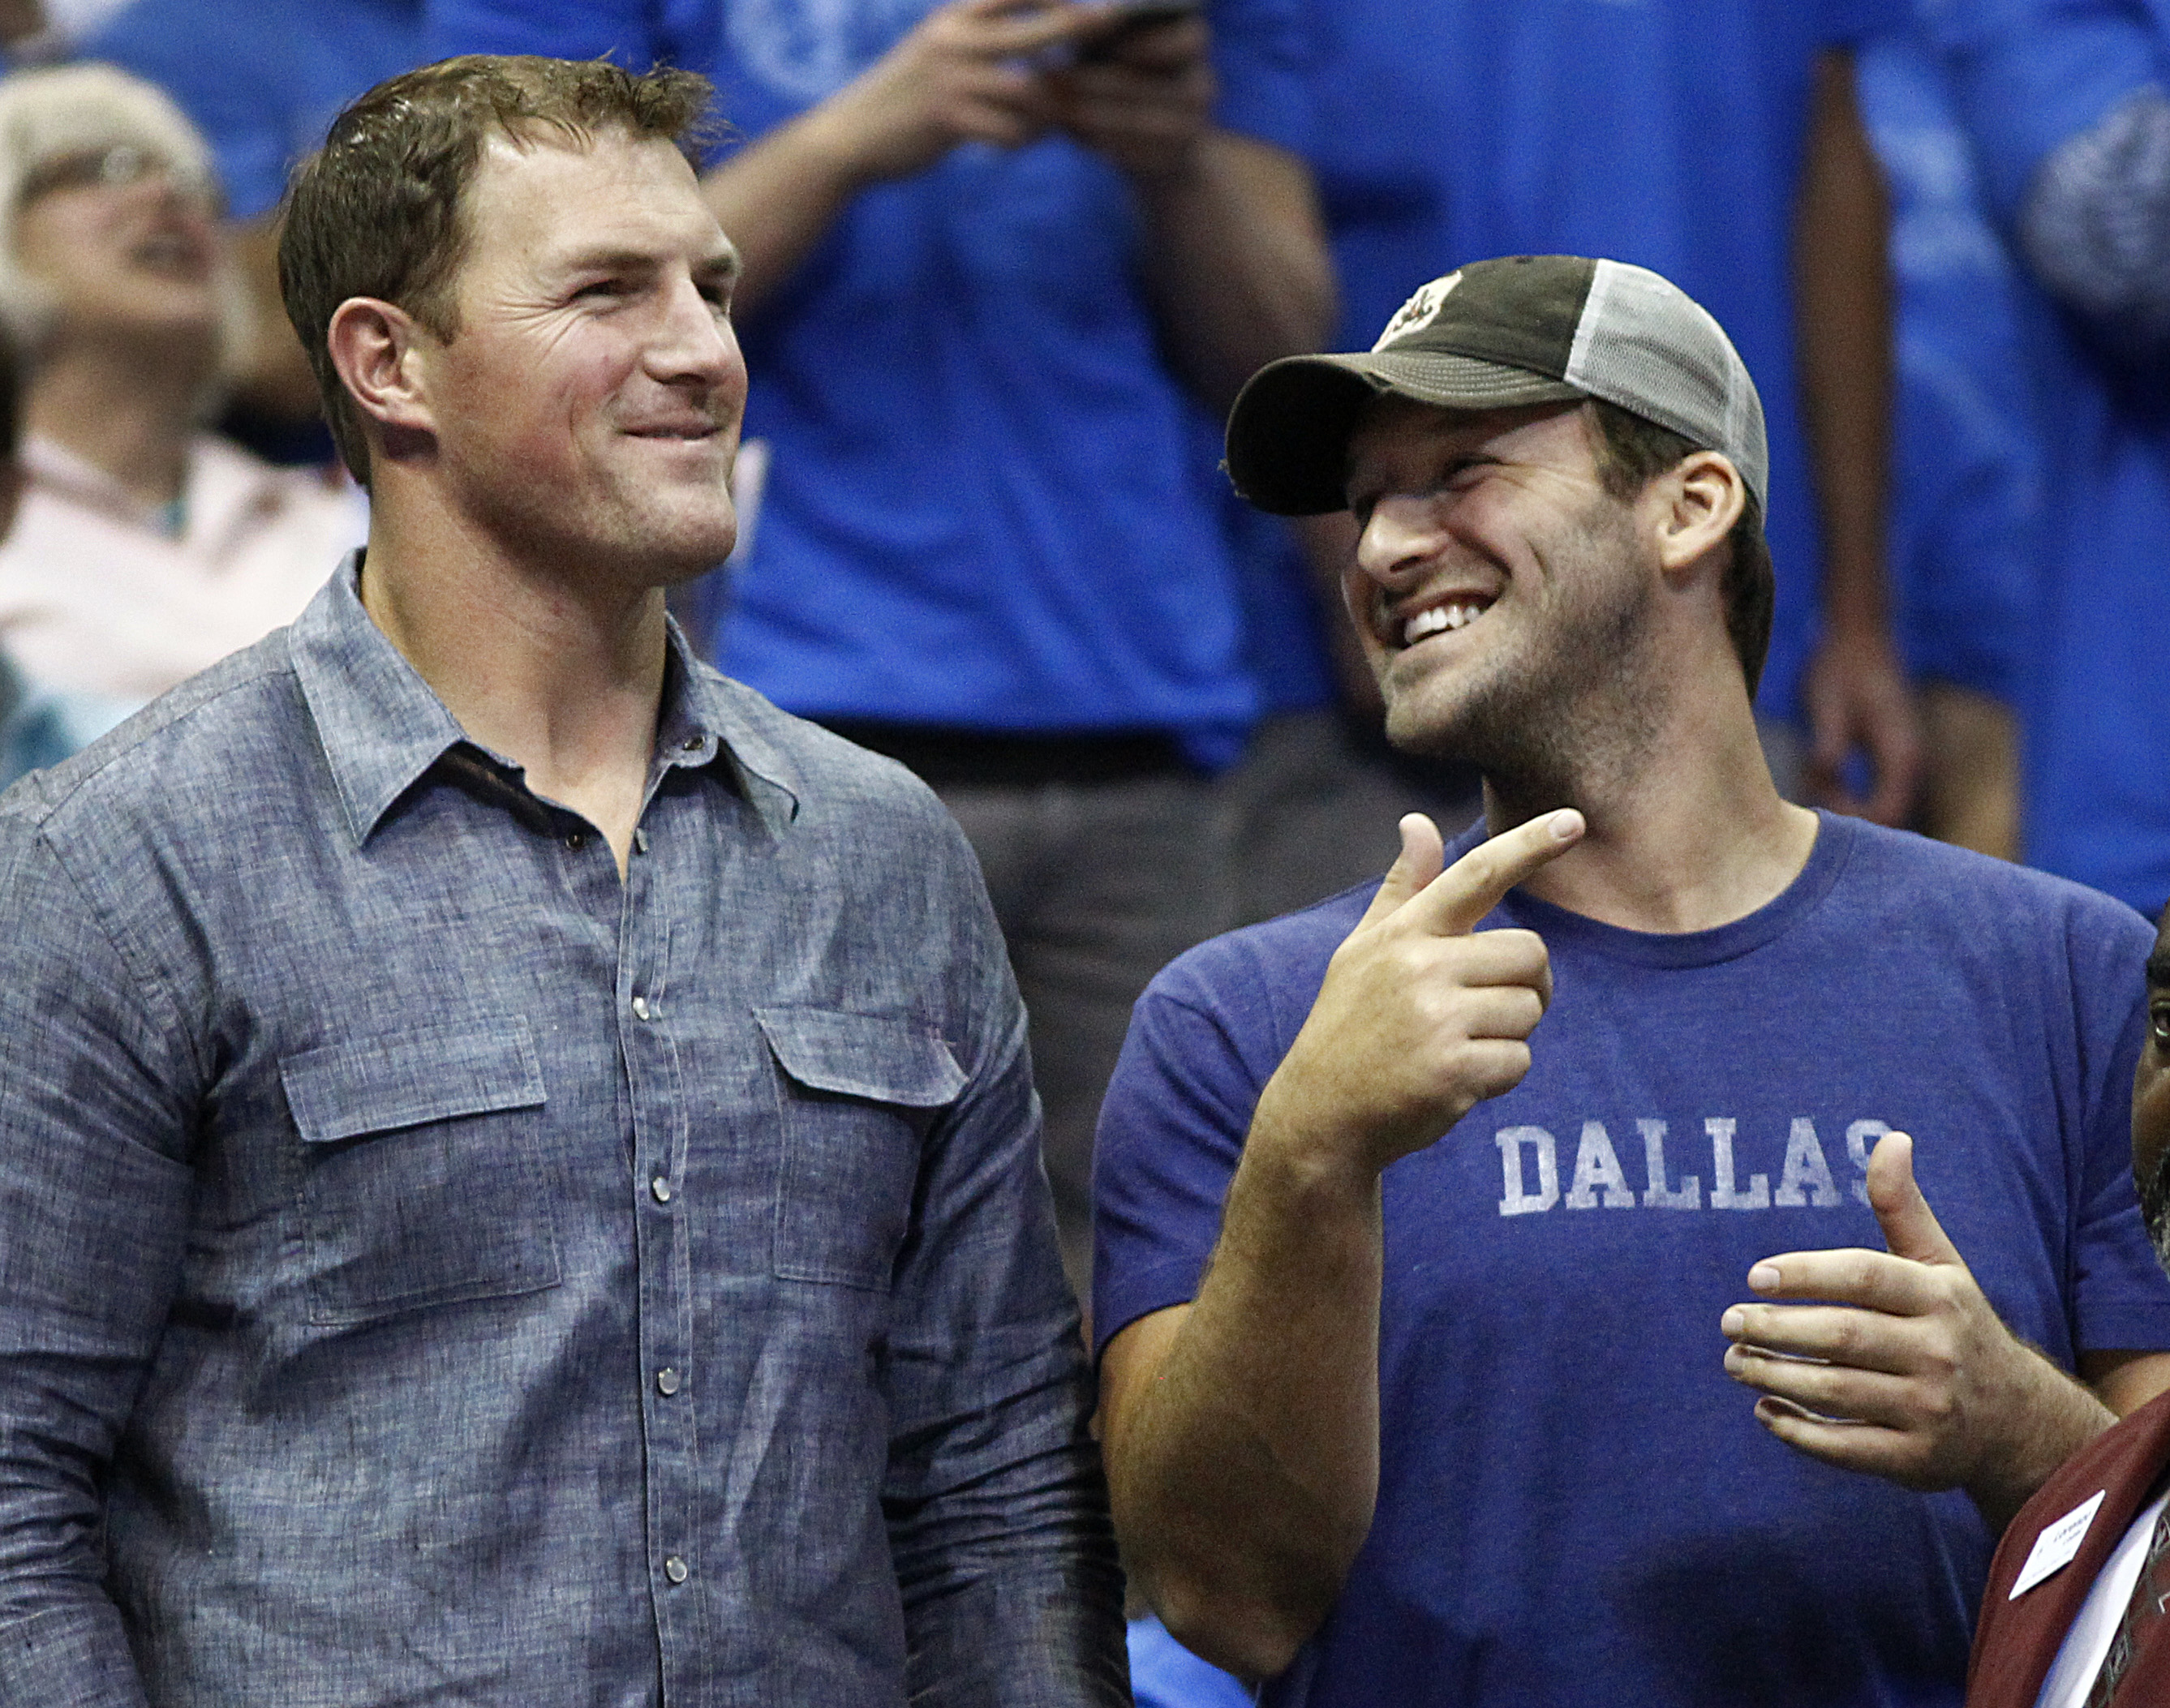 The Star News - Tony Romo, Jason Witten Extend Their Support To Dallas Police